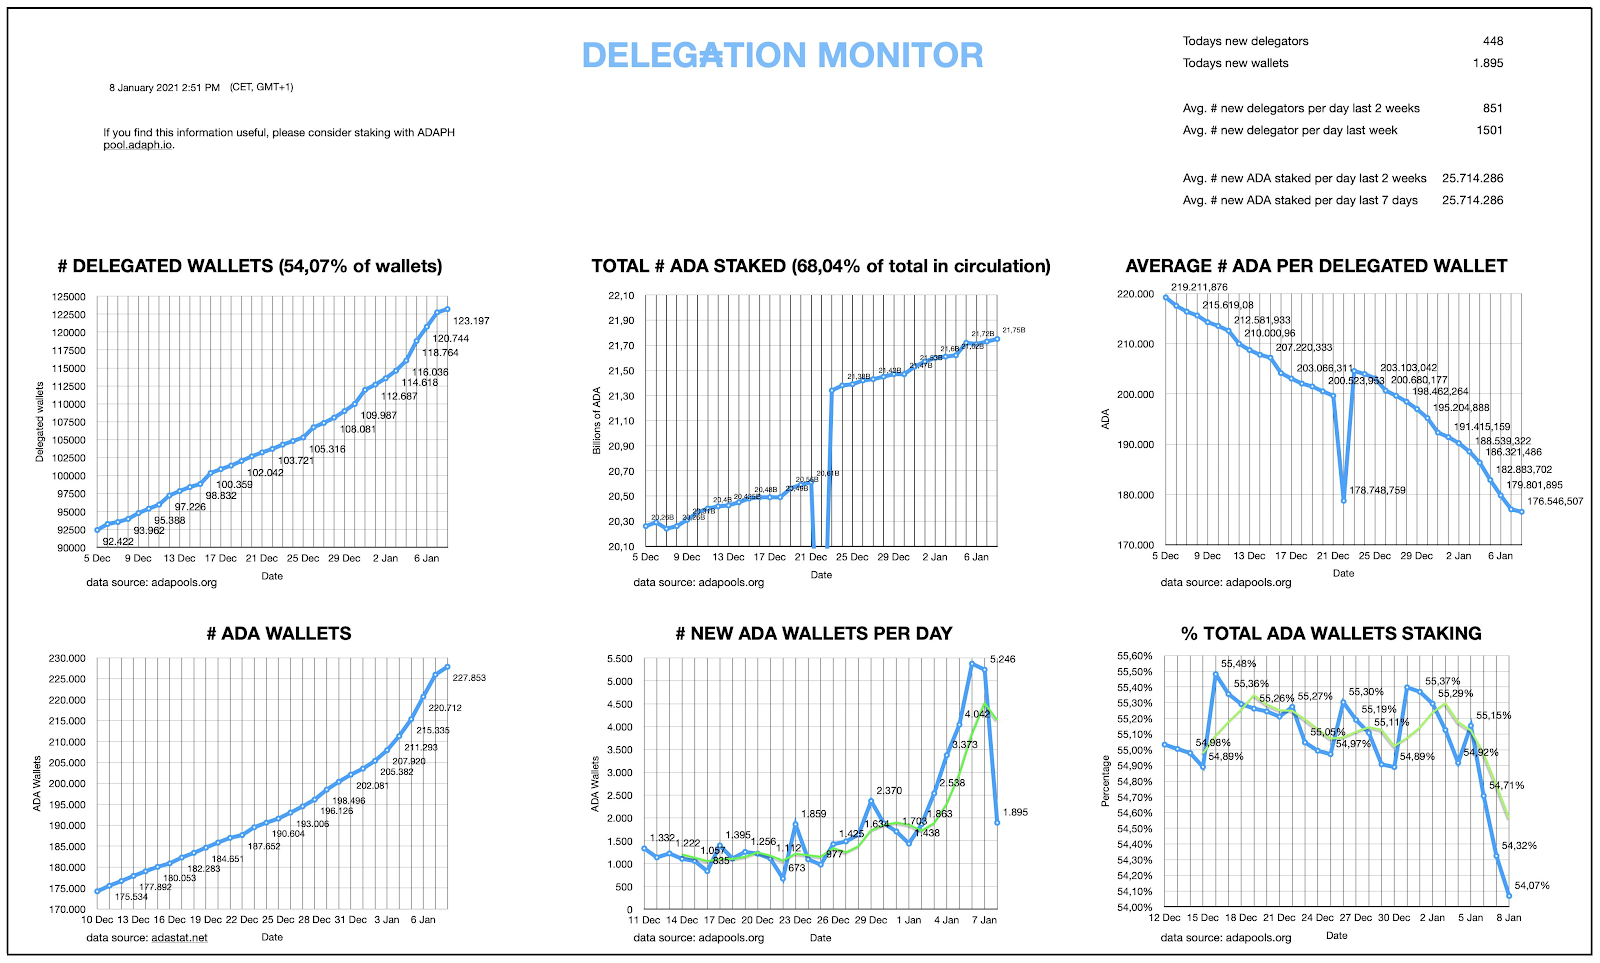 Graphs showing the number of new wallets and delegated wallets, as well as total amount ADA staked on Cardano